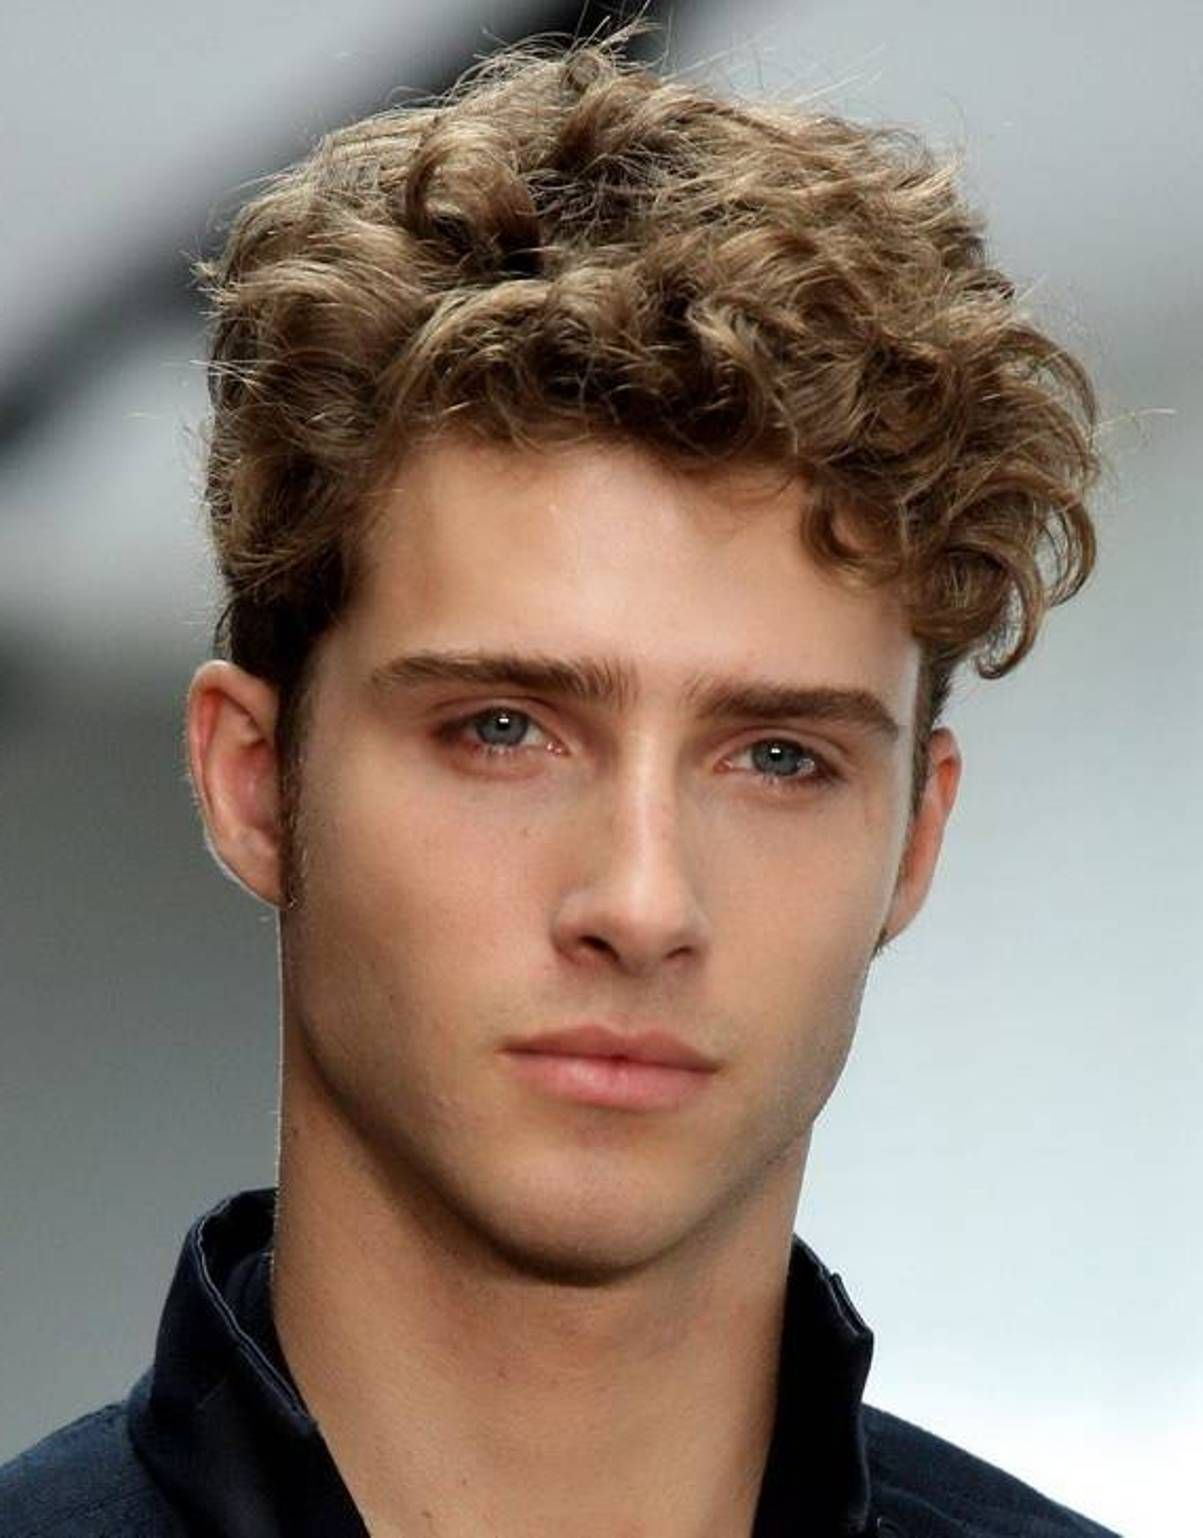 Curly Hairstyles Men Gorgeous Size Matters 60's Hair Trends That Rocked The Nation  Hair Styles